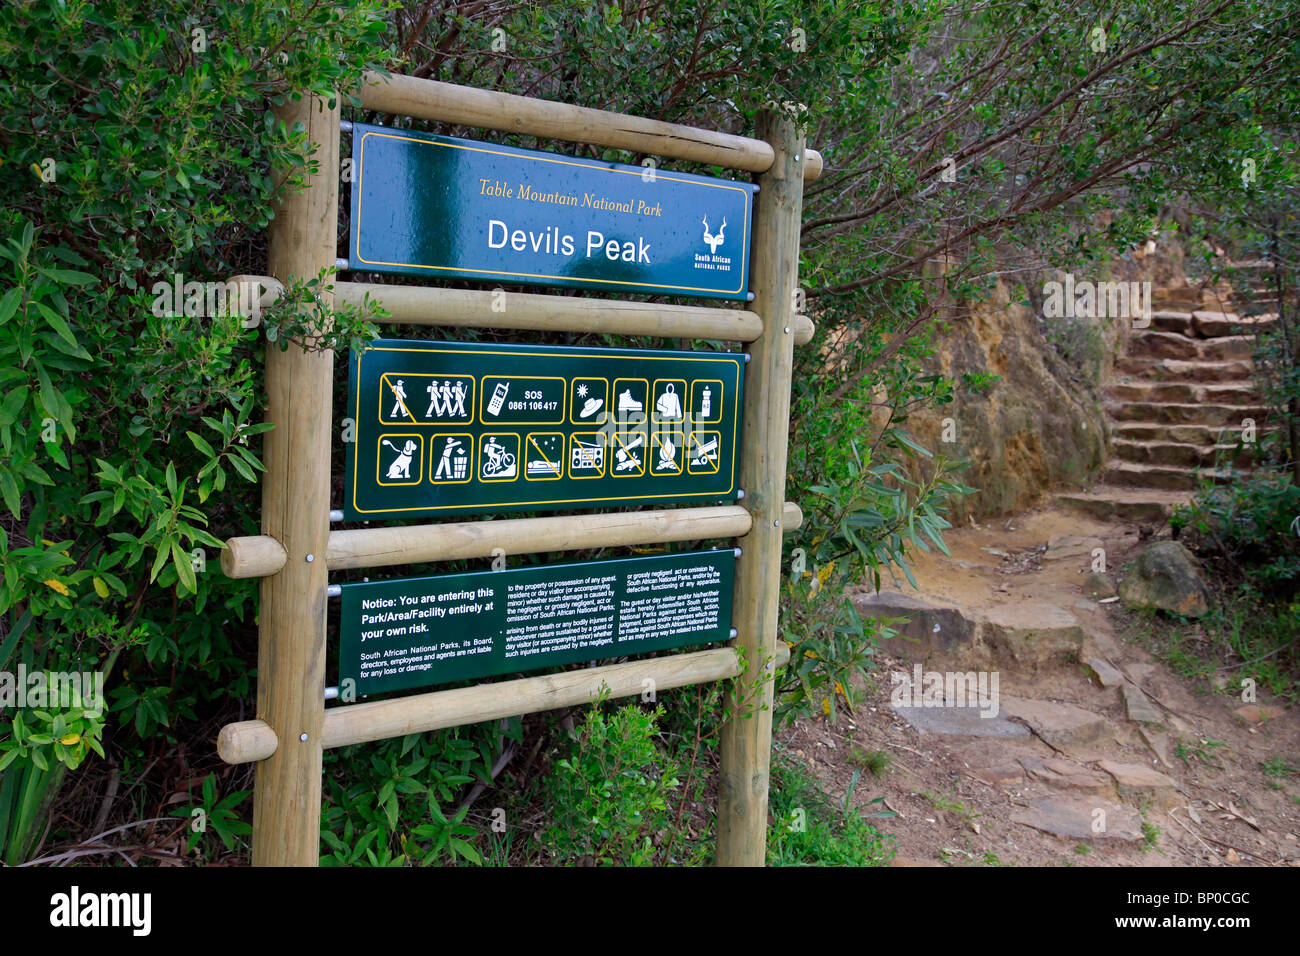 Information sign at Devil's Peak in the Table Mountain National Park - Stock Image